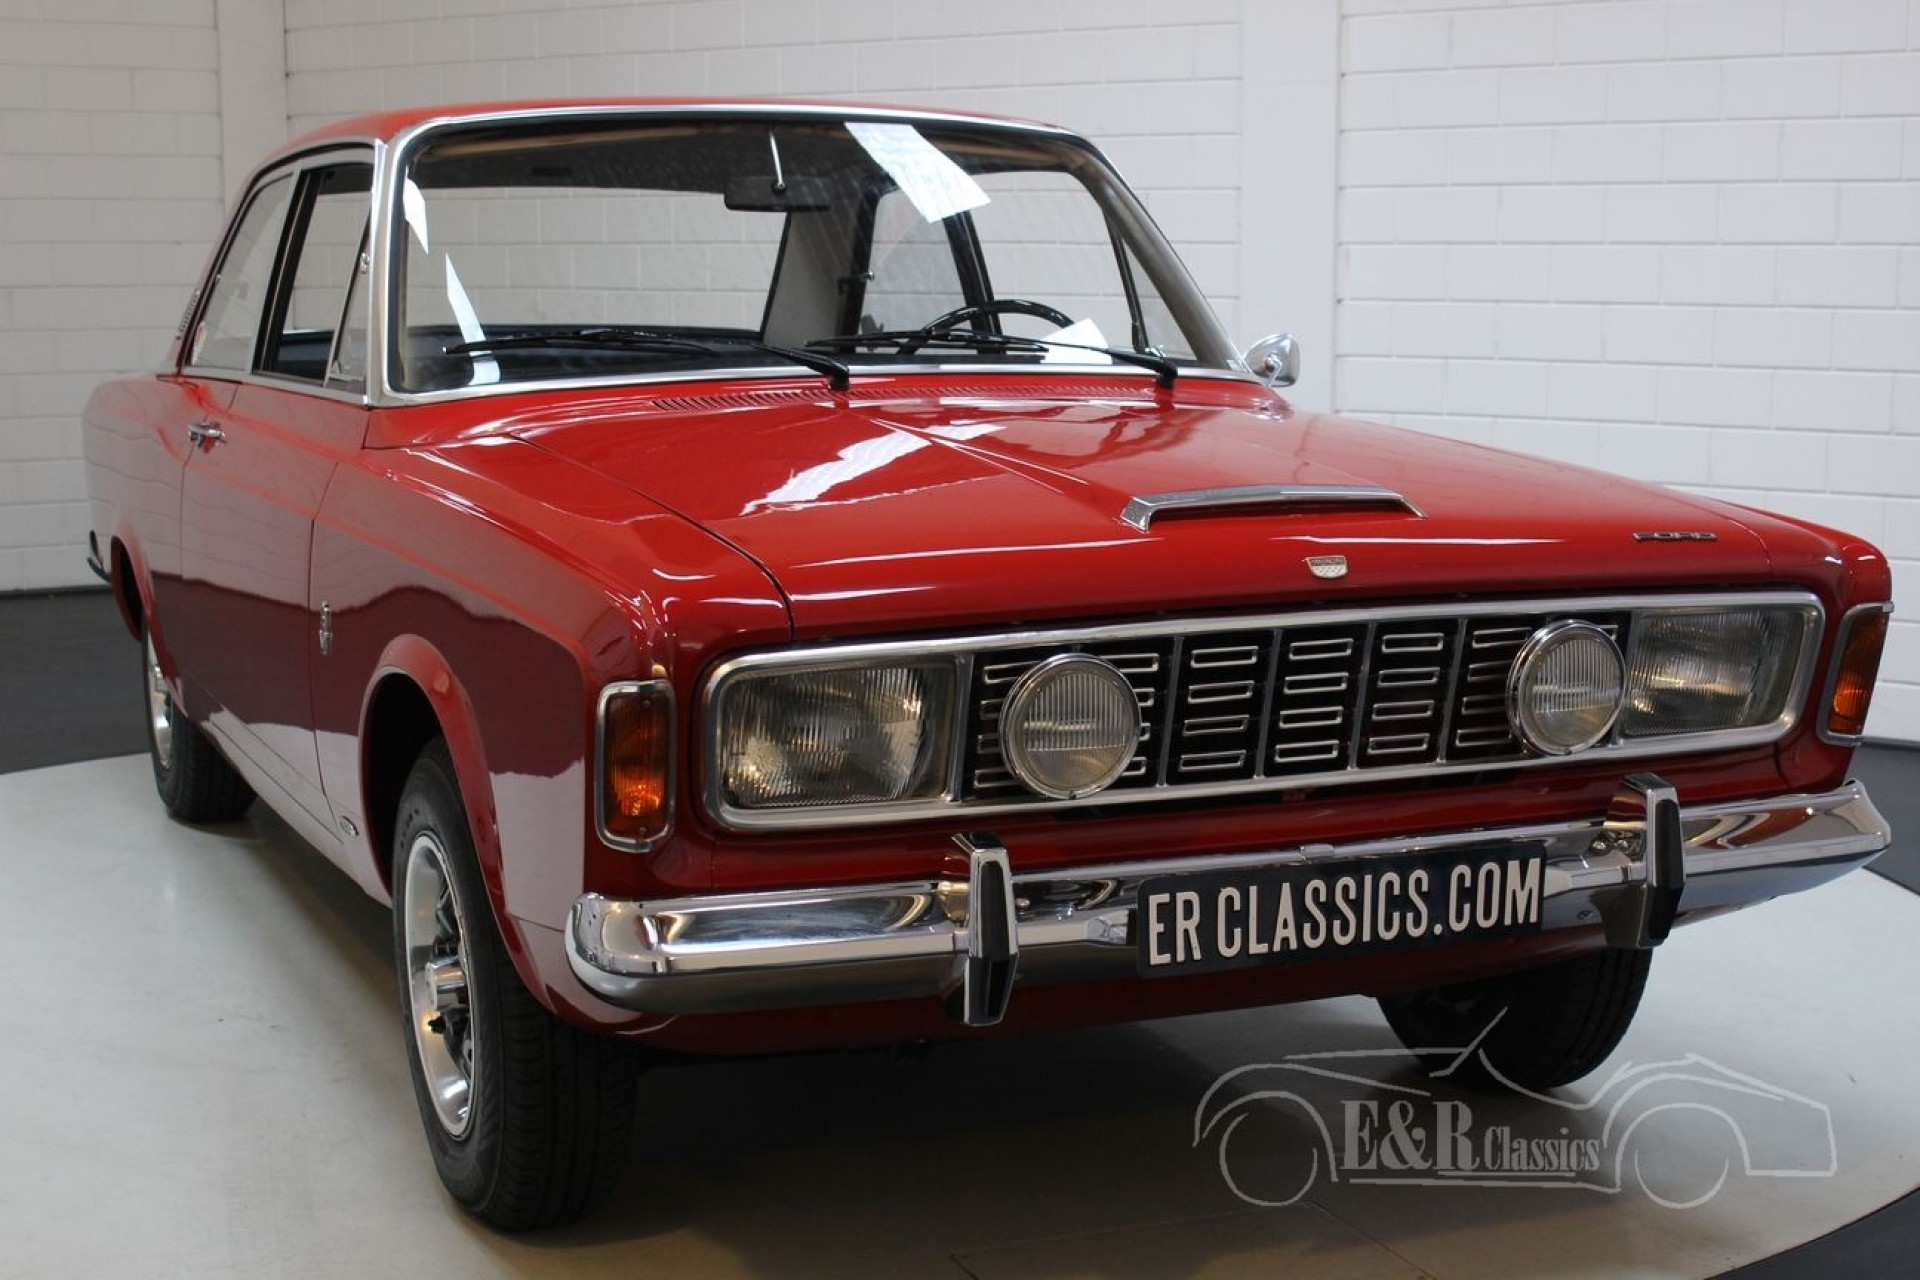 Ford Taunus 20m 1968 For Sale At Erclassics